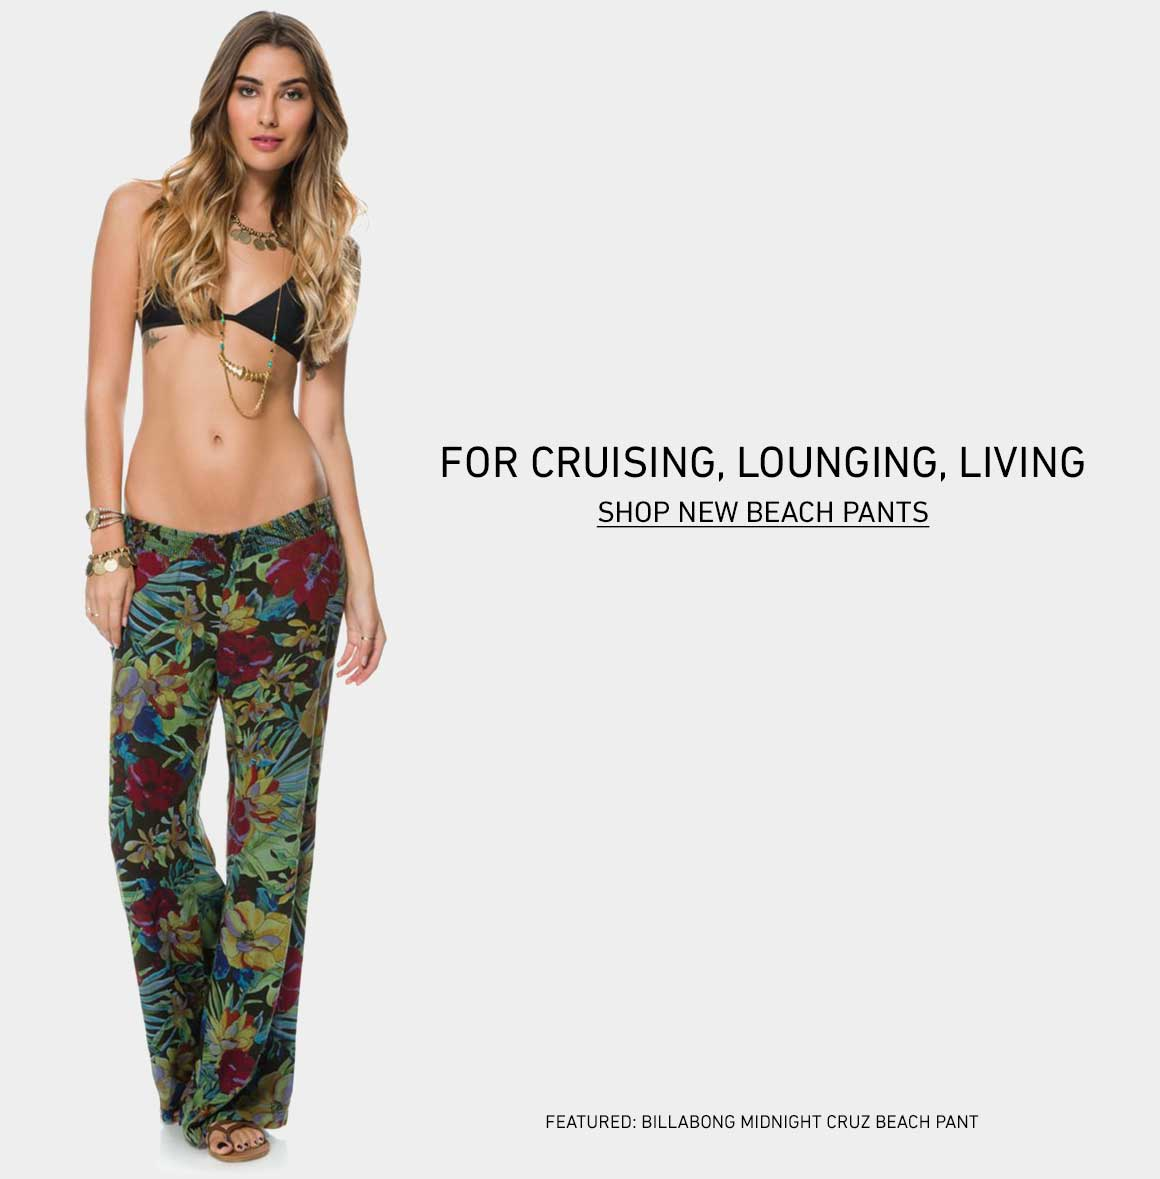 For Cruising, Lounging, Living: Shop New Beach Pants